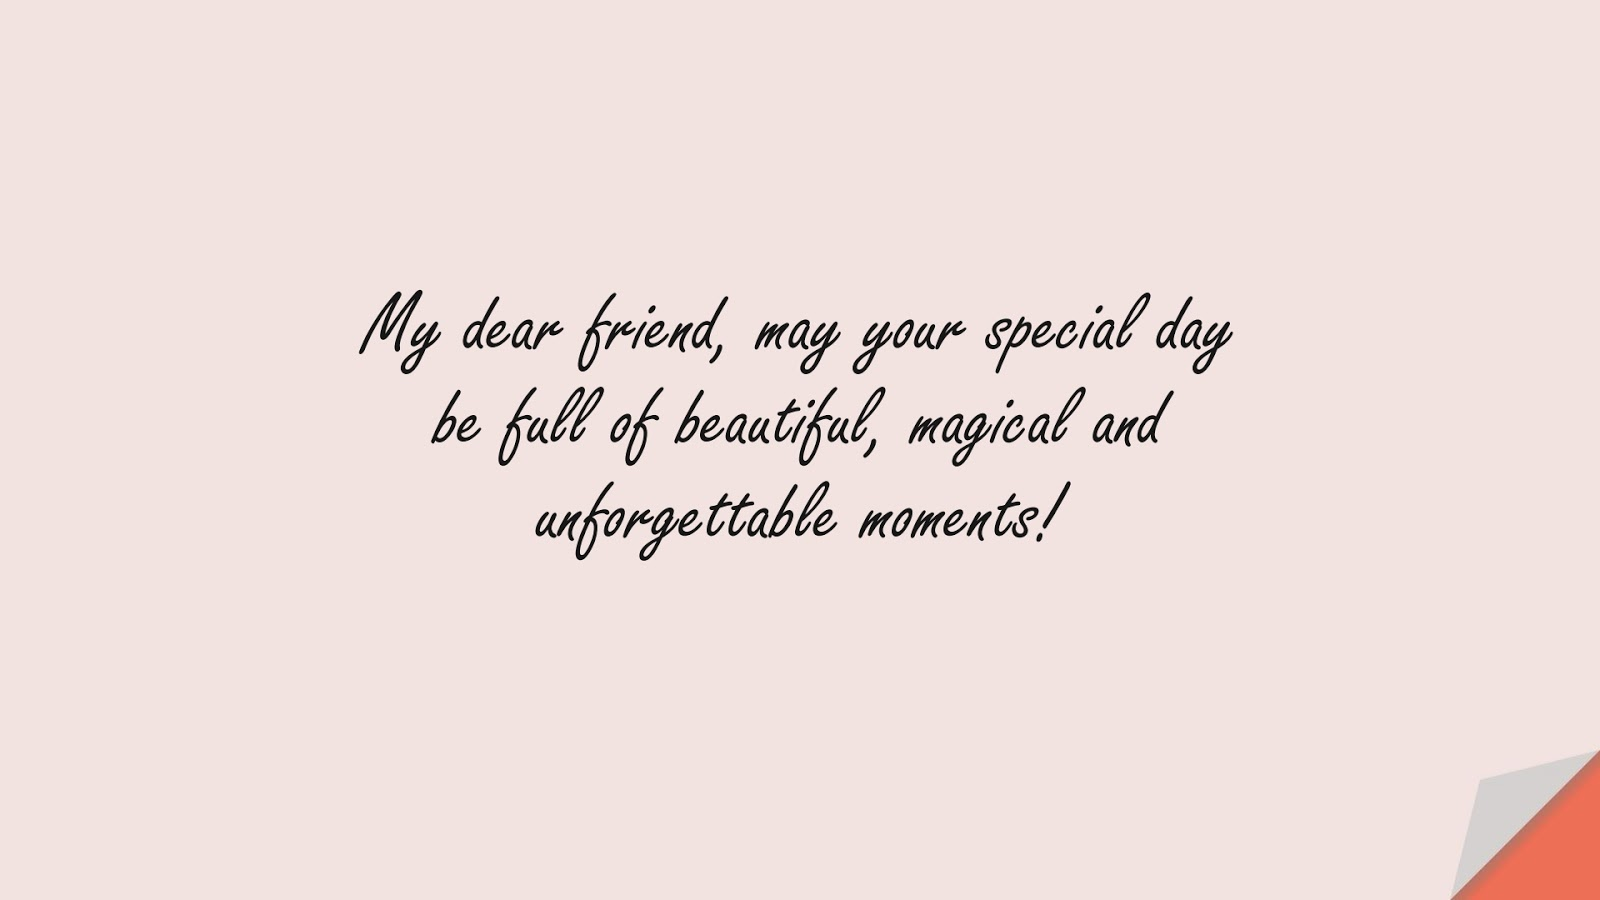 My dear friend, may your special day be full of beautiful, magical and unforgettable moments!FALSE